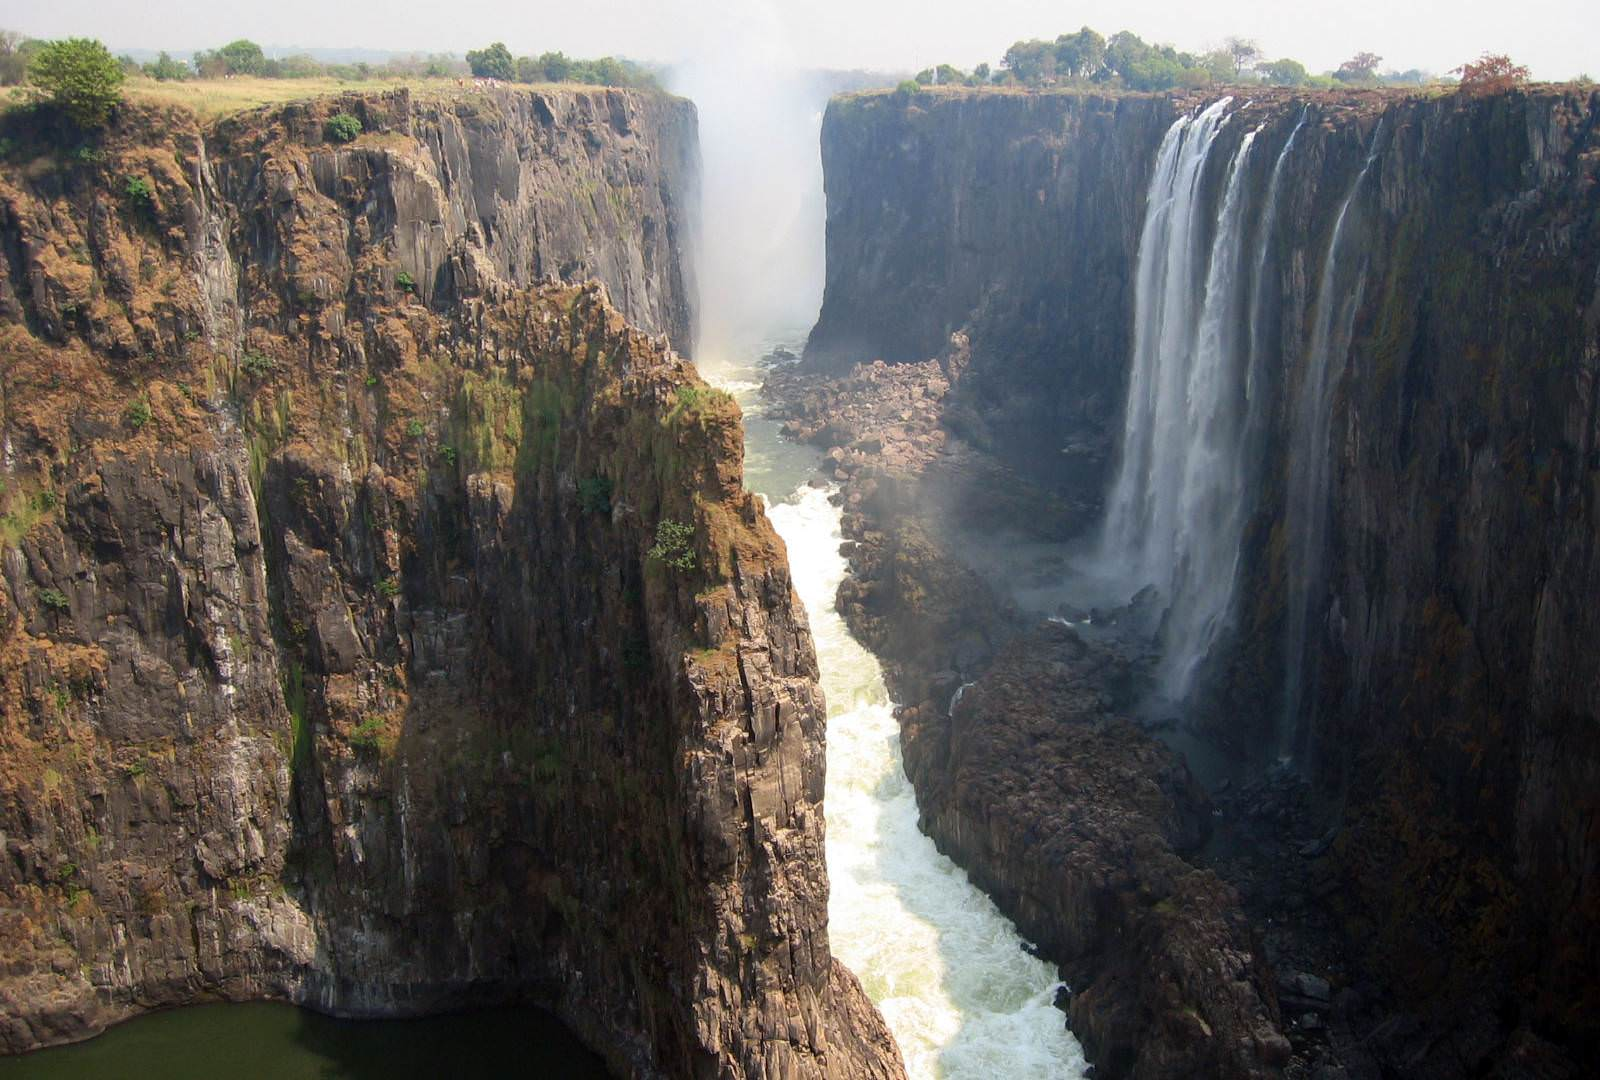 Wild Horizons Tour of the falls Zambian side